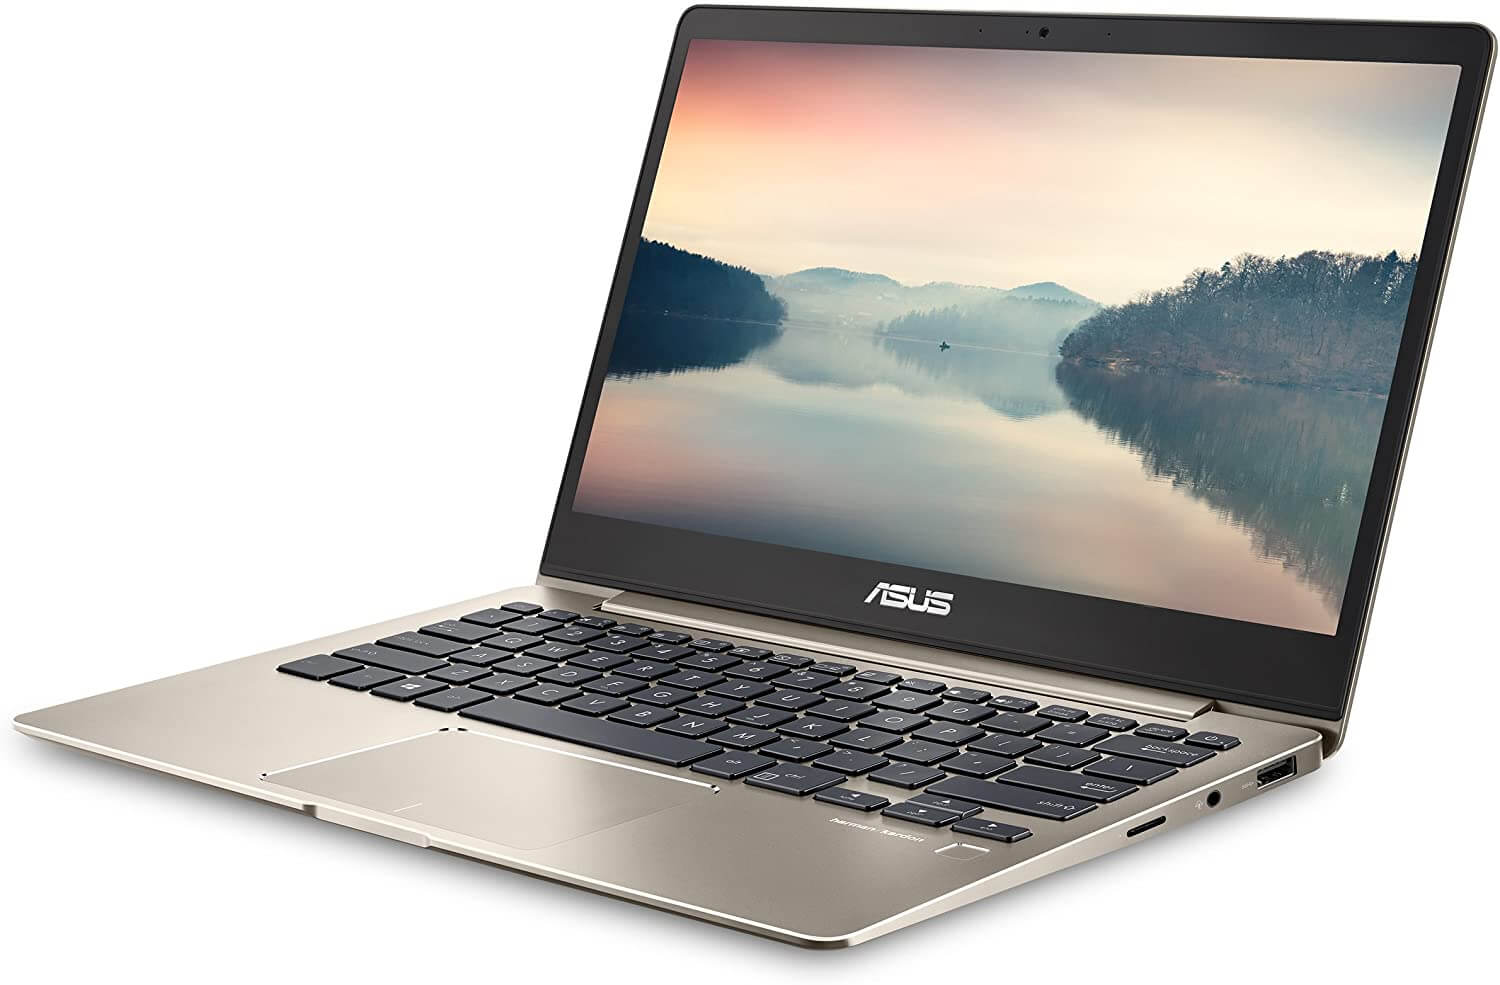 ASUS ZenBook 13 Ultra-Slim Laptop - Best Laptop For Authors and Writers